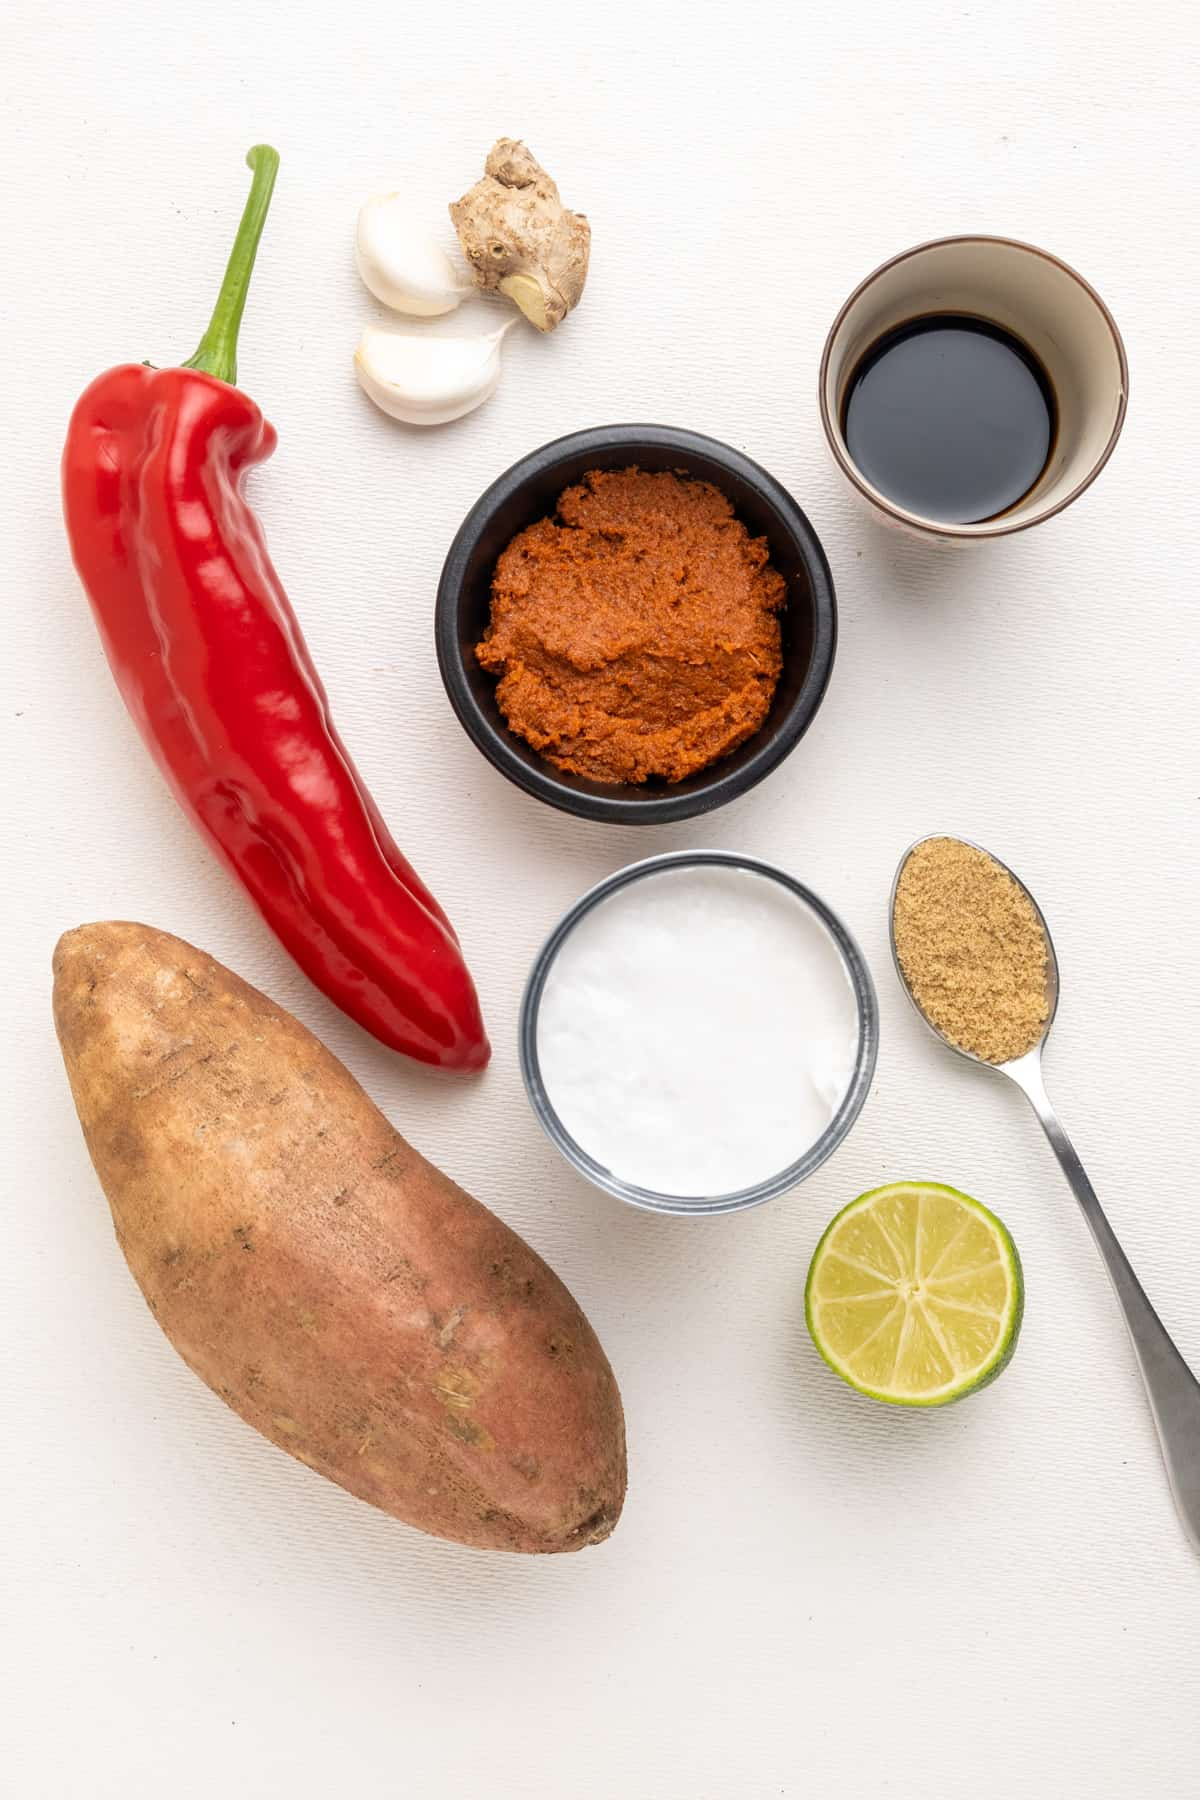 The most important ingredients for this recipe: A large sweet potato, a pointed red pepper, fresh garlic and ginger, red curry paste, coconut milk, soy sauce, brown sugar, and half a lime.